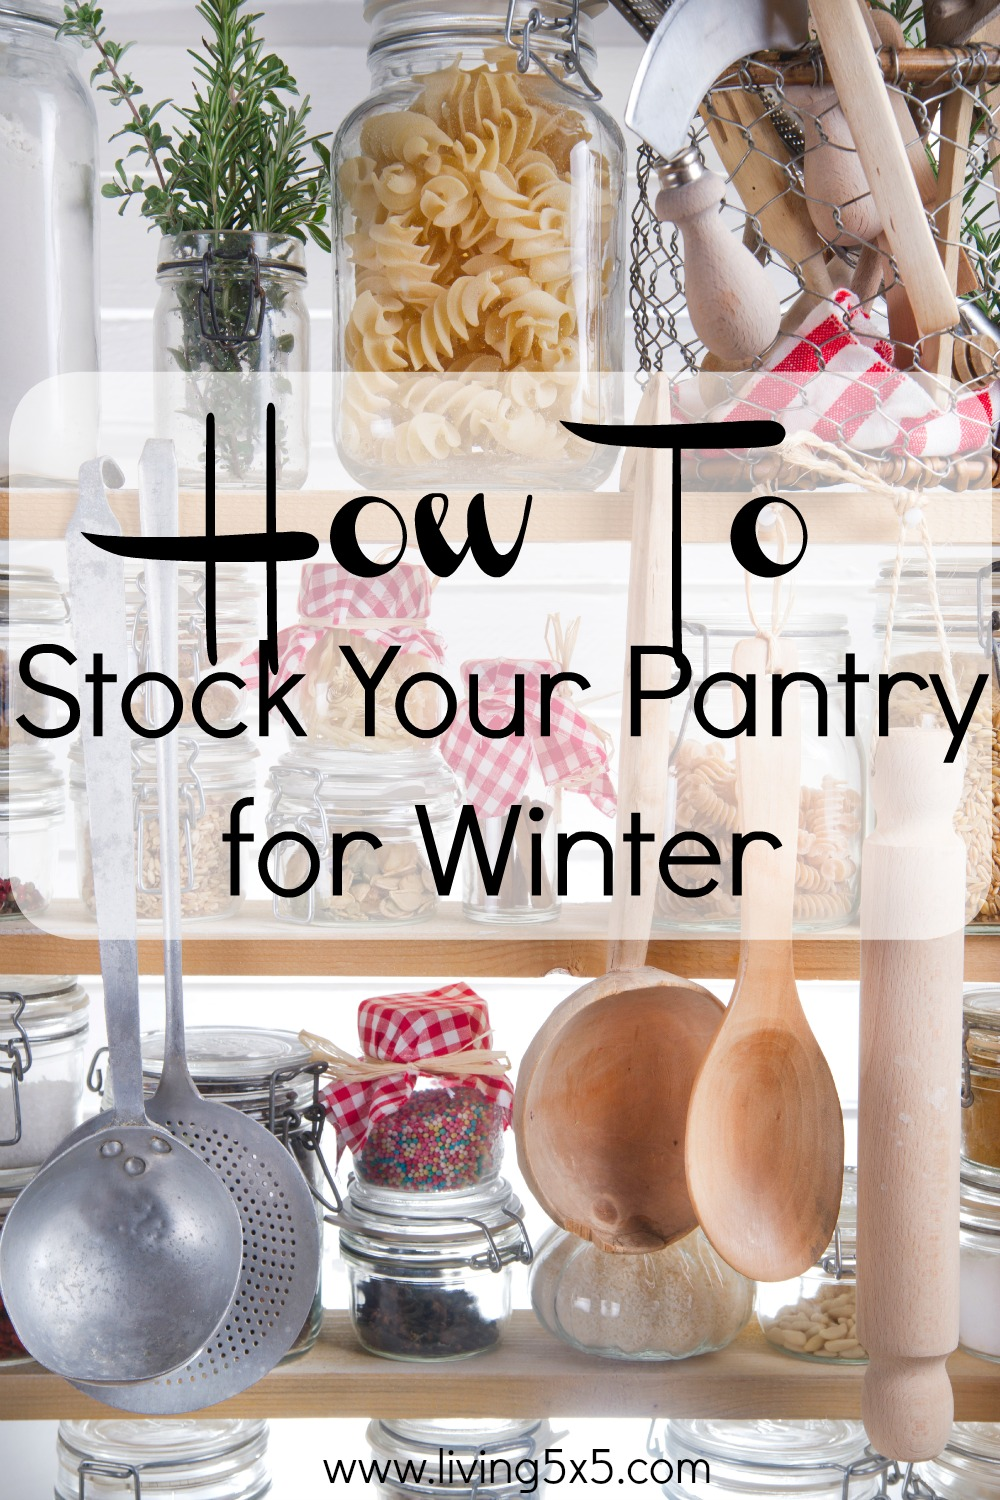 See how to stock your pantry for winter as food choices change over the season.